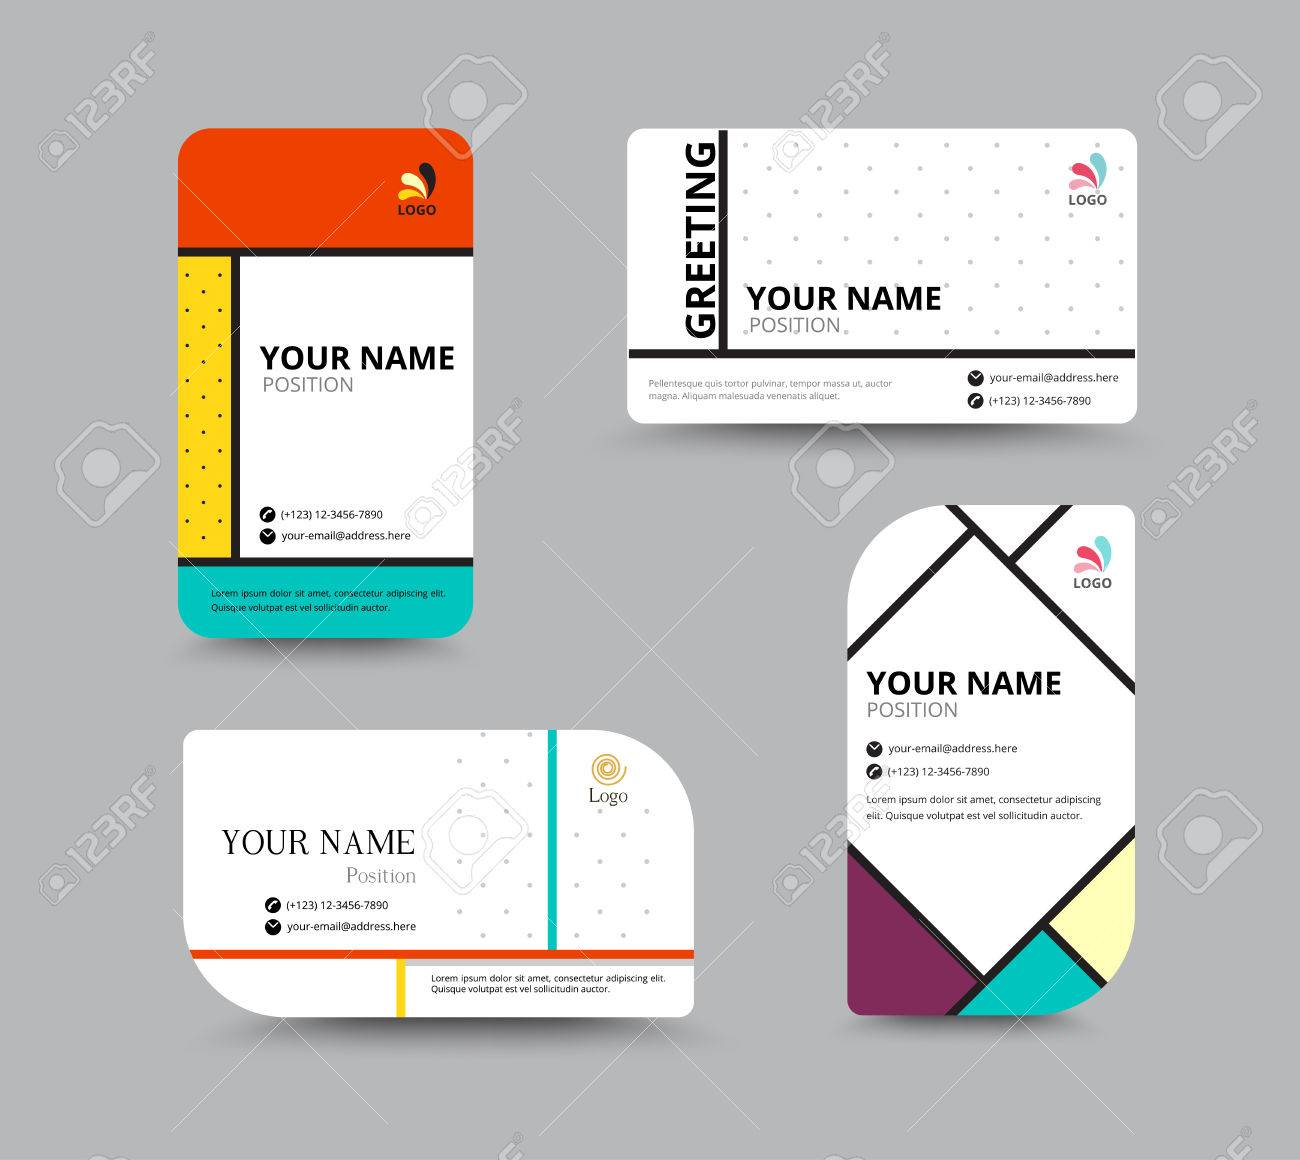 Name Card Example award template word – Name Card Example